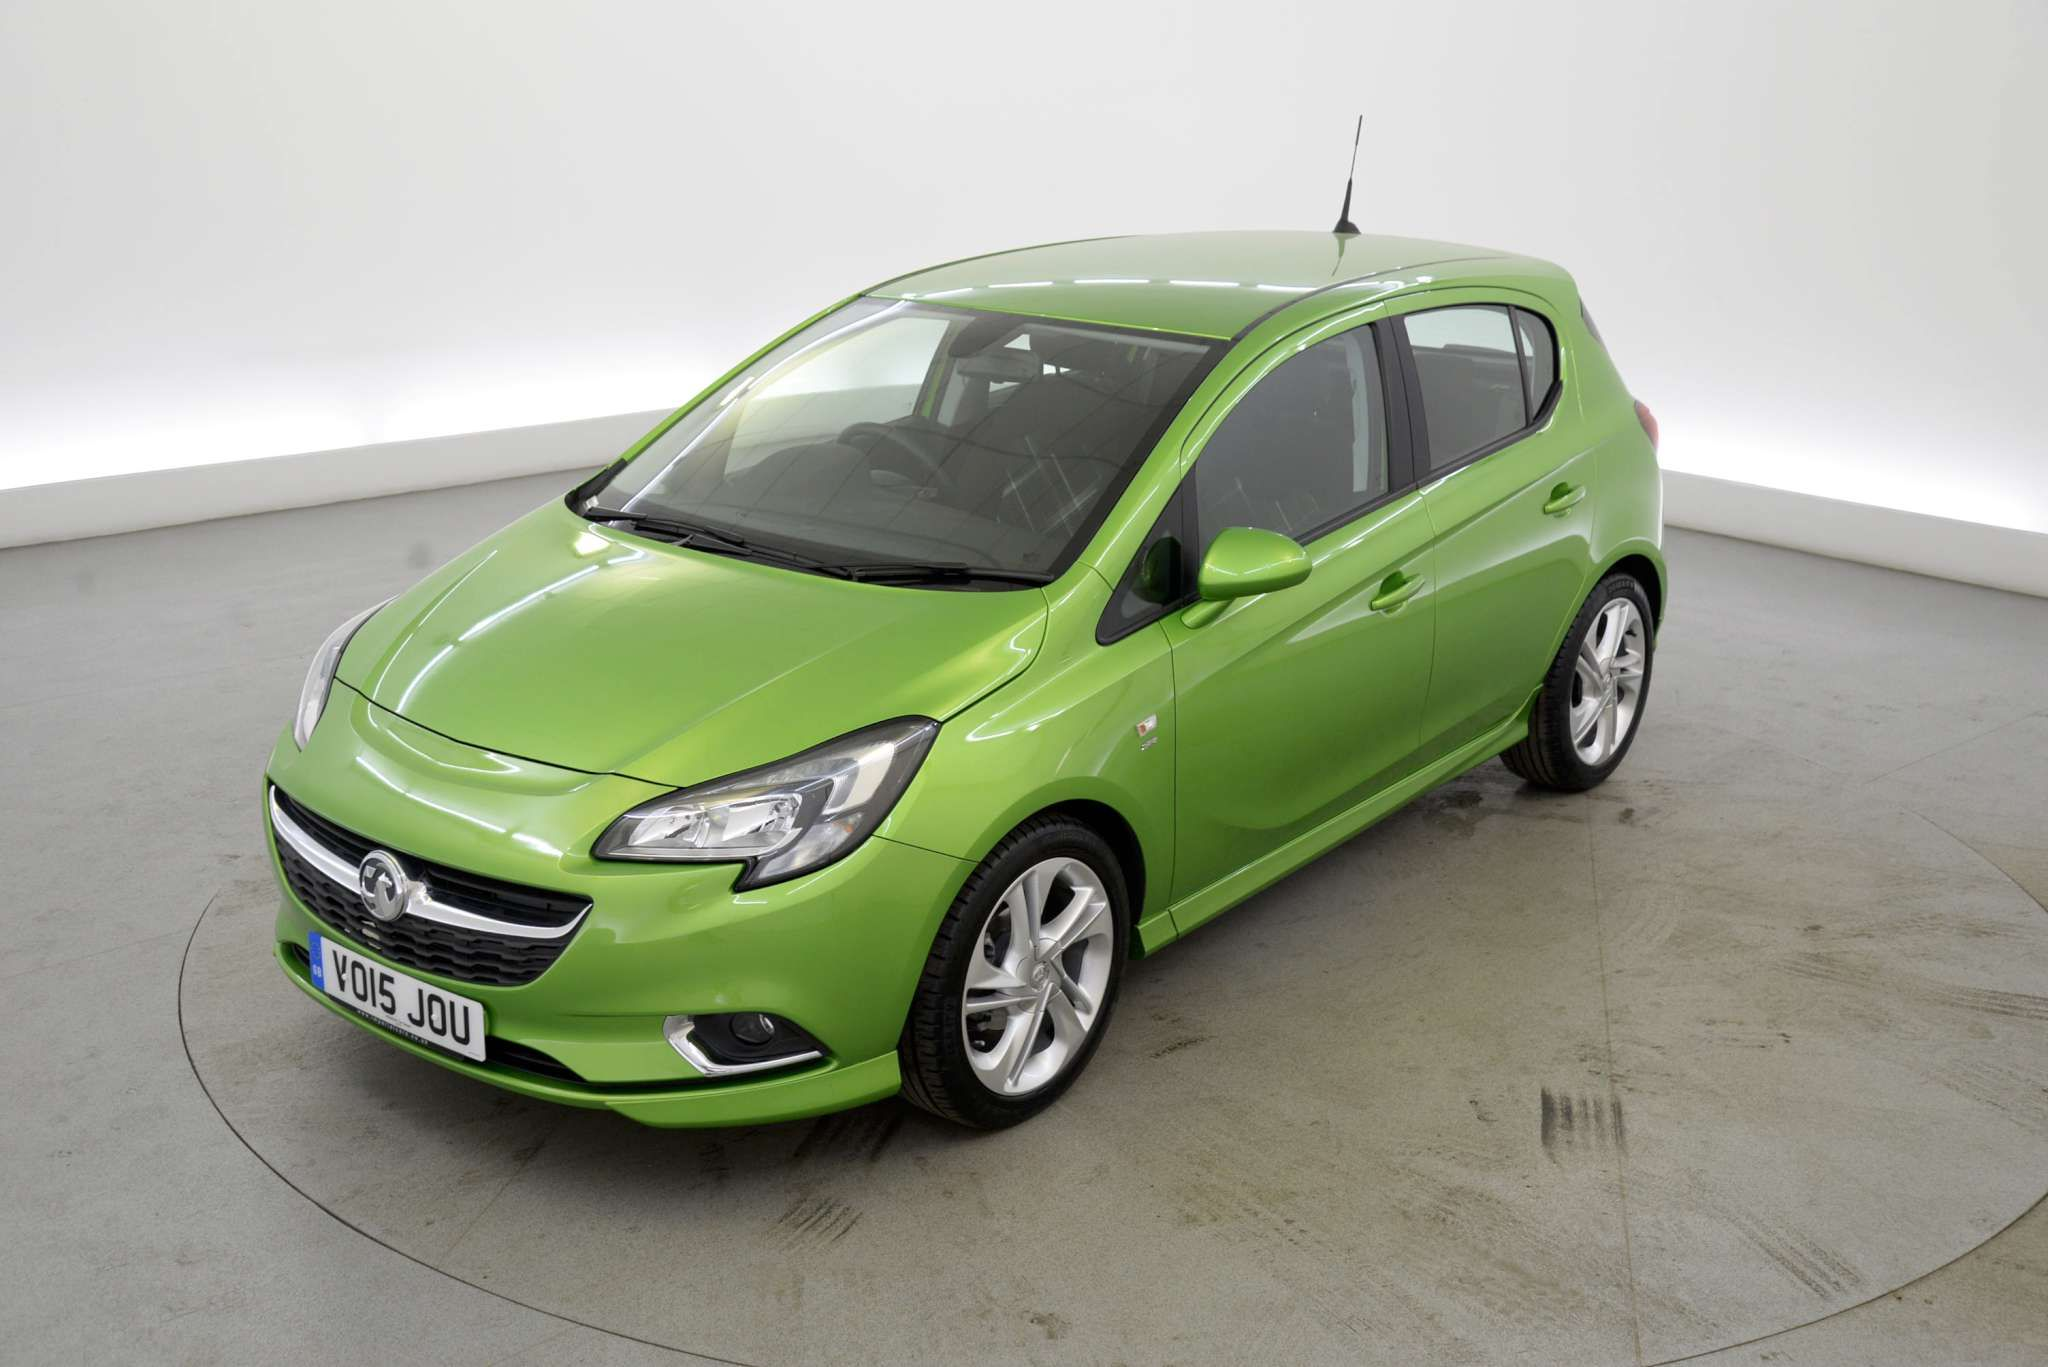 Used Vauxhall Corsa Finance Deals Second Hand Corsa For Sale Uk Vauxhall Corsa Vauxhall Car